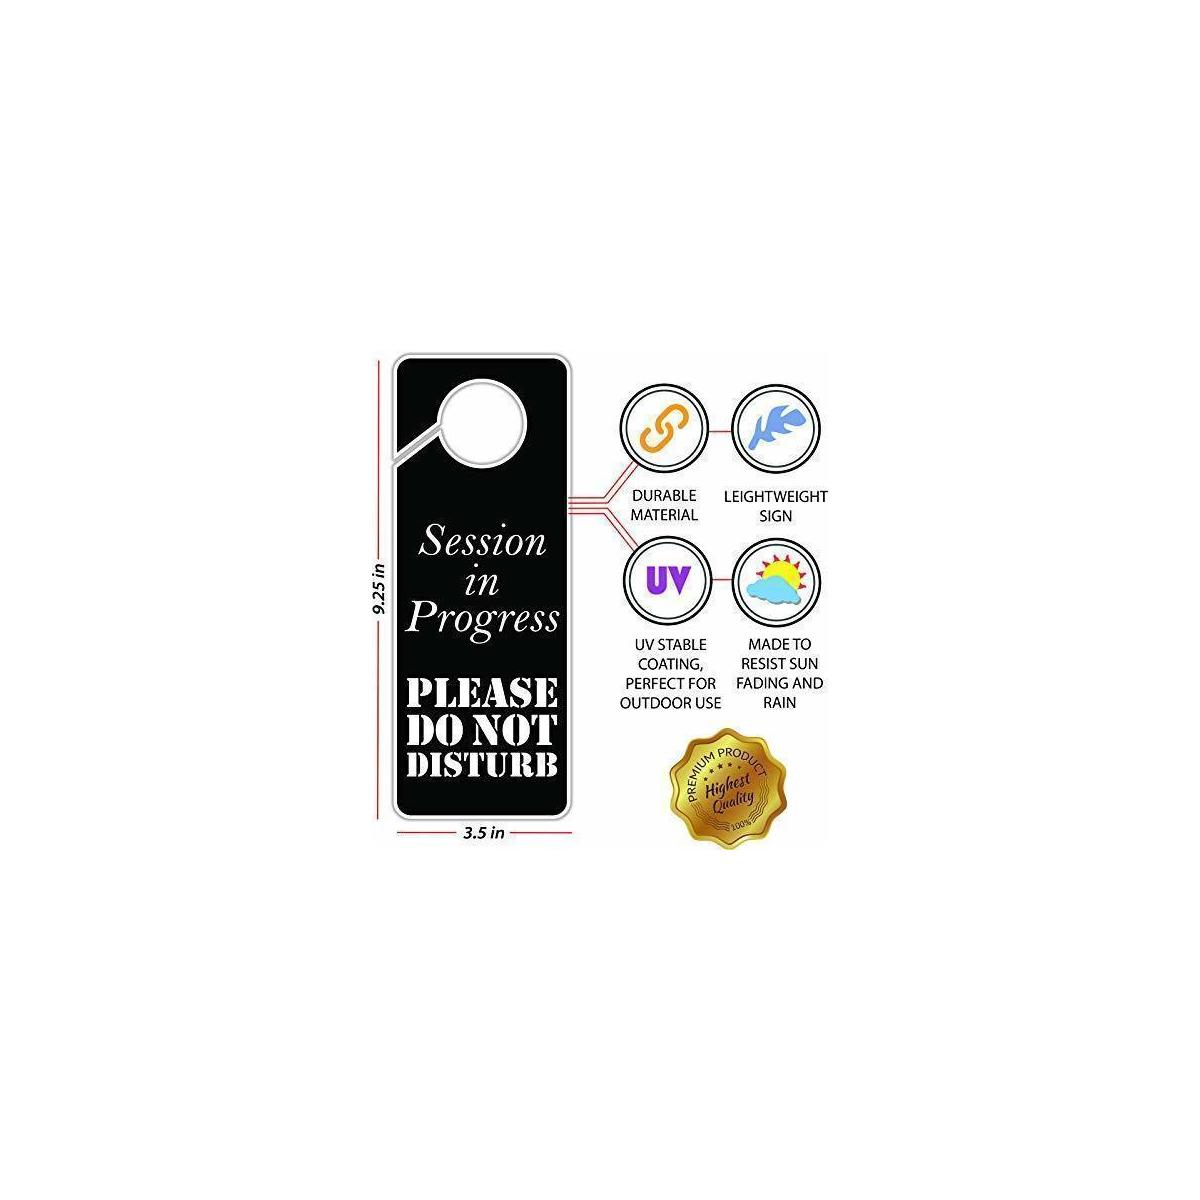 Session in Progress Please Do Not Disturb Sign, Door Knob Hanger 2 Pack, Double Sided, Ideal for Using in Any Places Like Offices, Clinics, Law Firms, Hotels or During Therapy, Massage, Spa Treatment